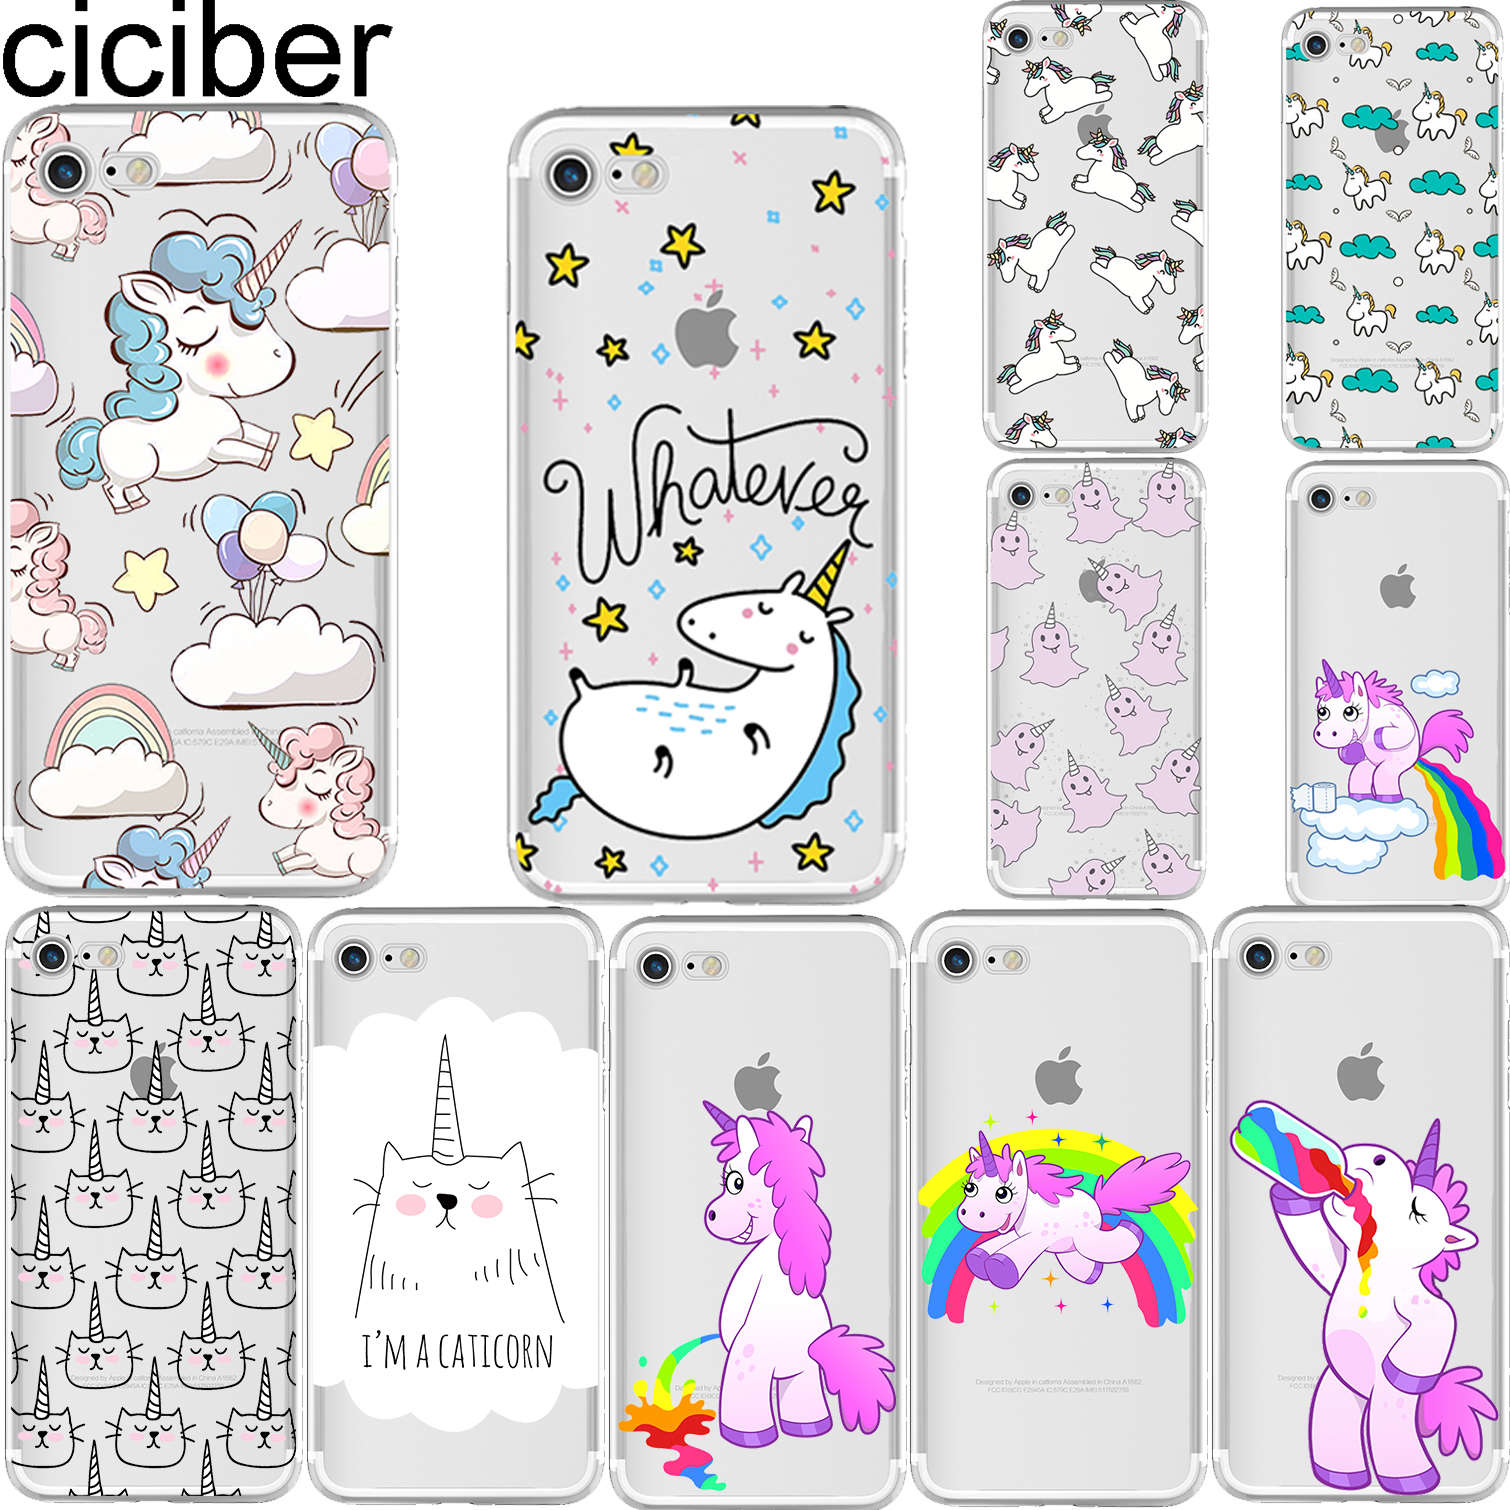 ciciber cute unicorn hippo rainbow horse pattern soft silicon case cover for iphone 6 6s 7 8. Black Bedroom Furniture Sets. Home Design Ideas